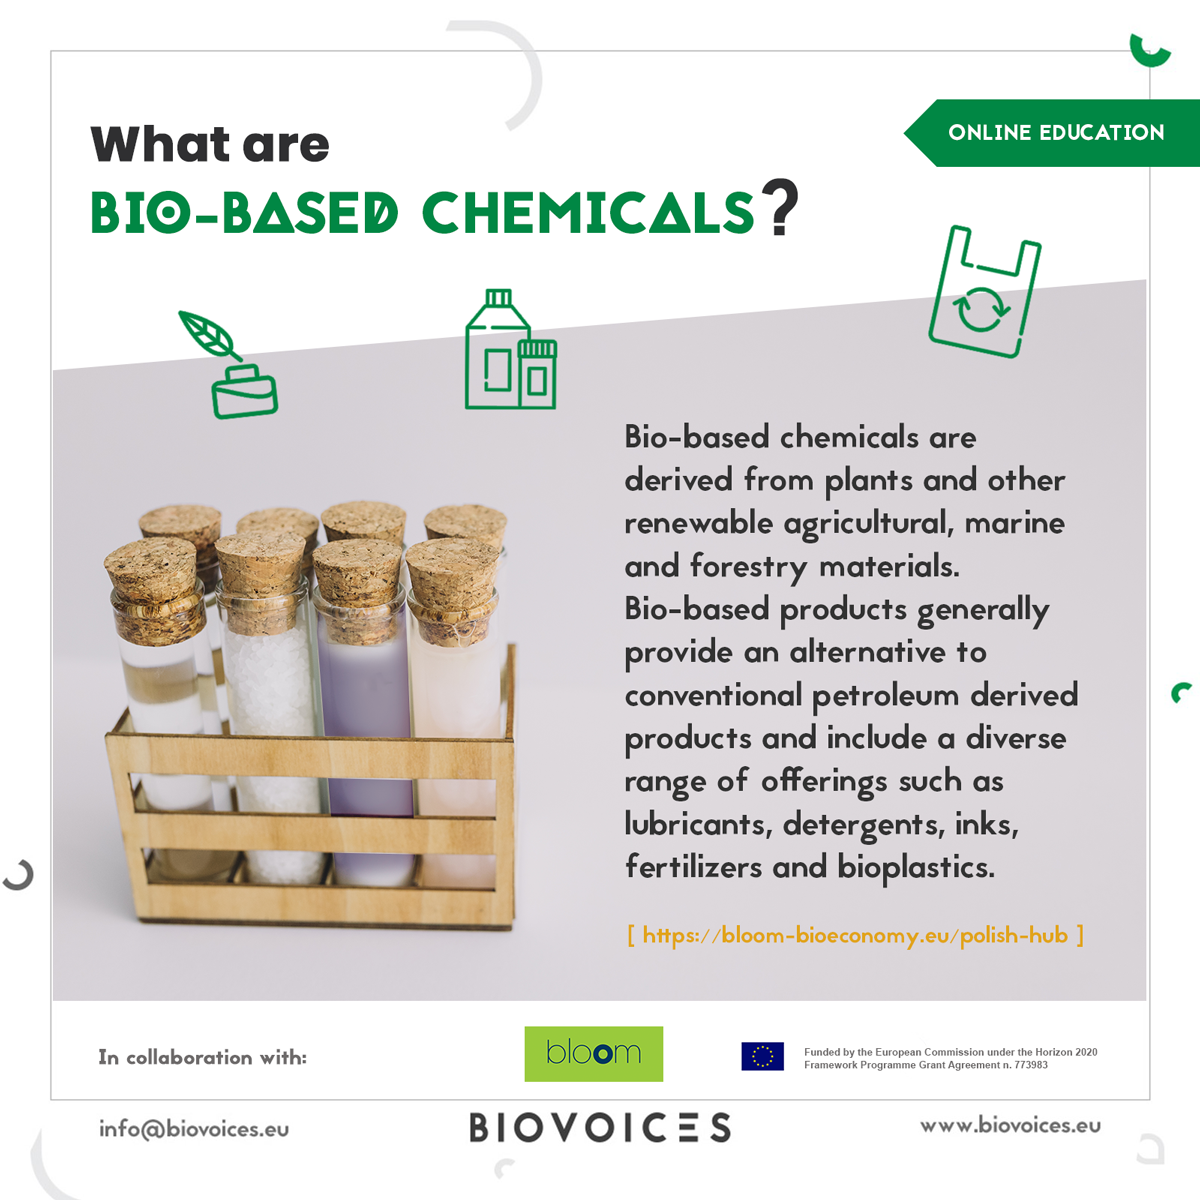 What are bio-based chemicals?